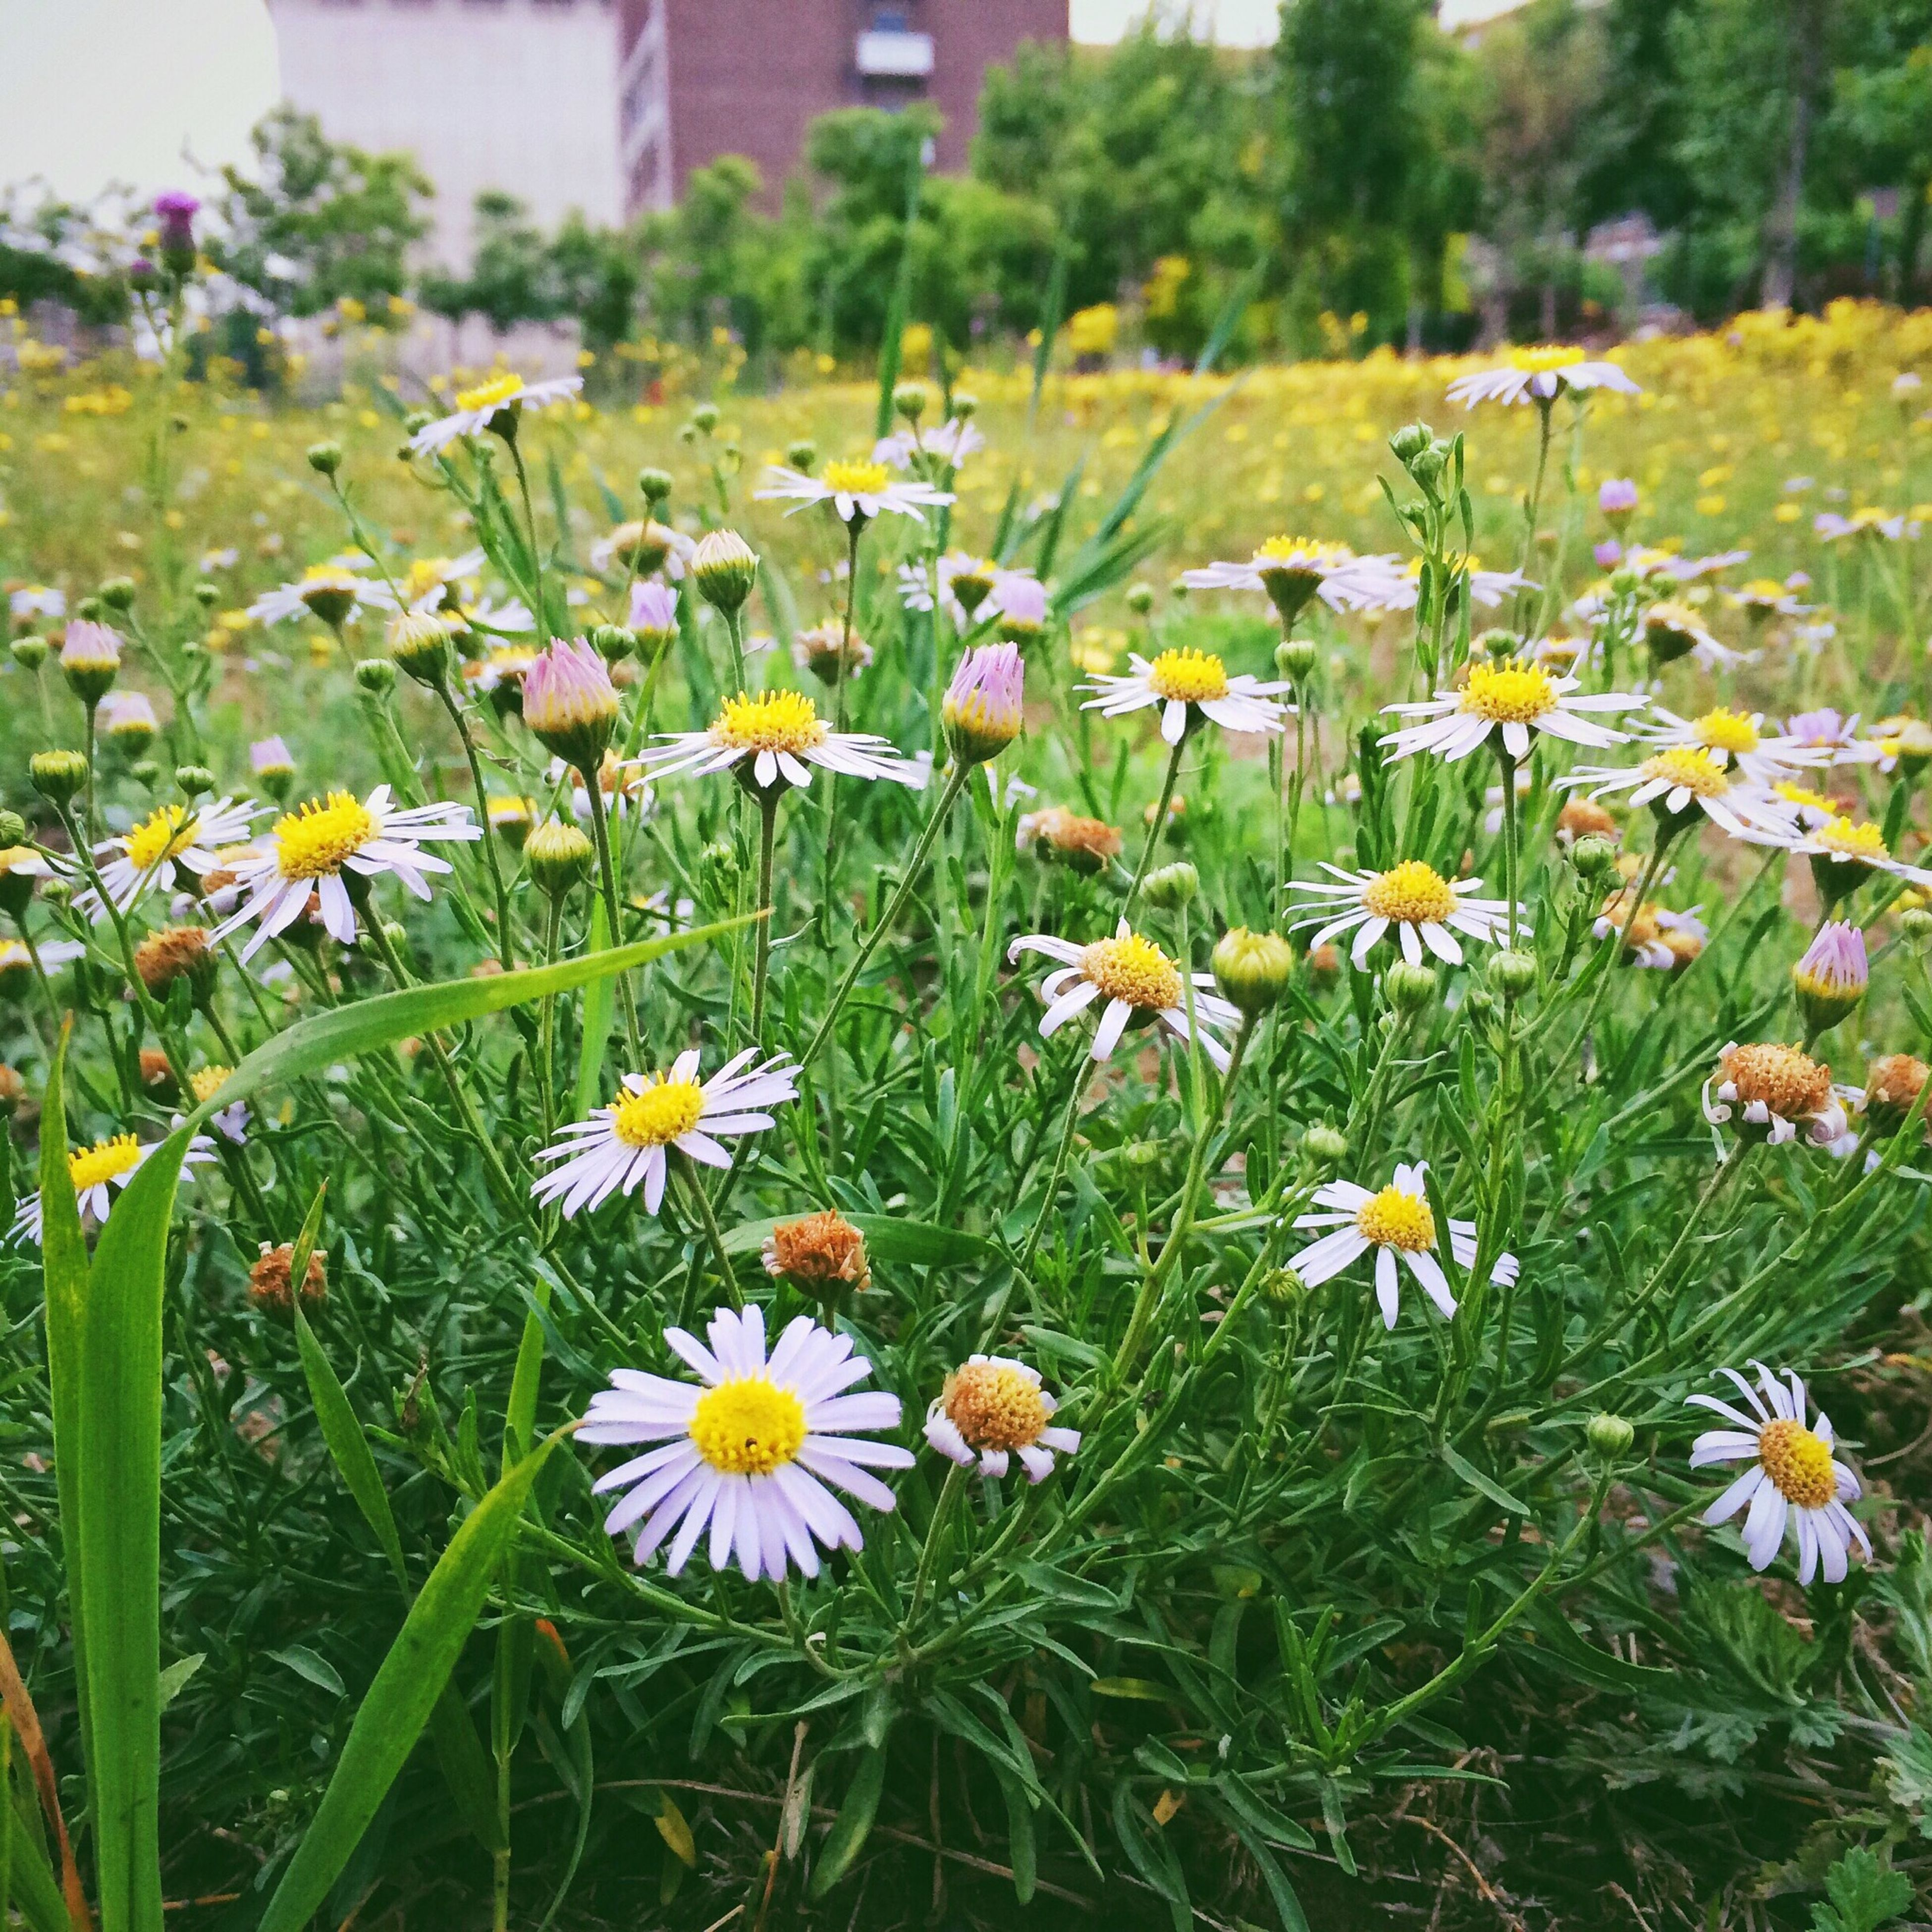 flower, freshness, fragility, growth, petal, field, grass, beauty in nature, blooming, flower head, nature, plant, green color, in bloom, daisy, yellow, wildflower, white color, day, meadow